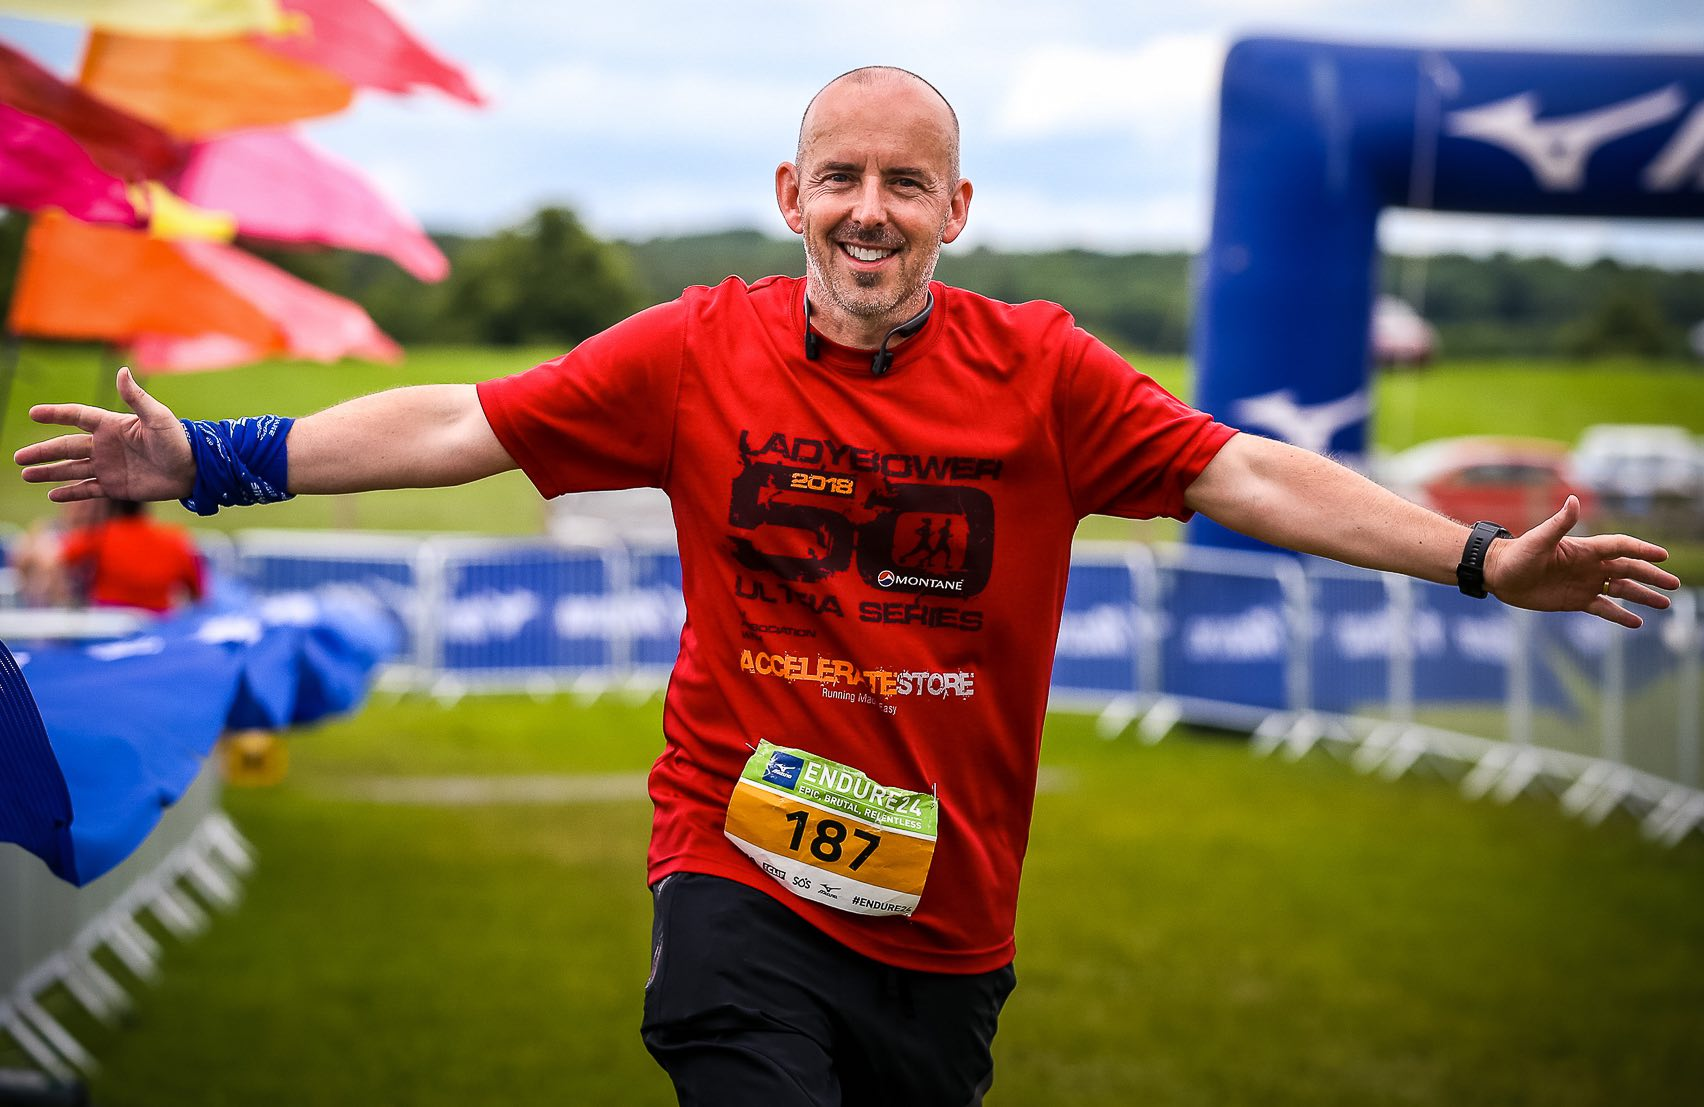 Paul Callaghan Coach in Running Fitness